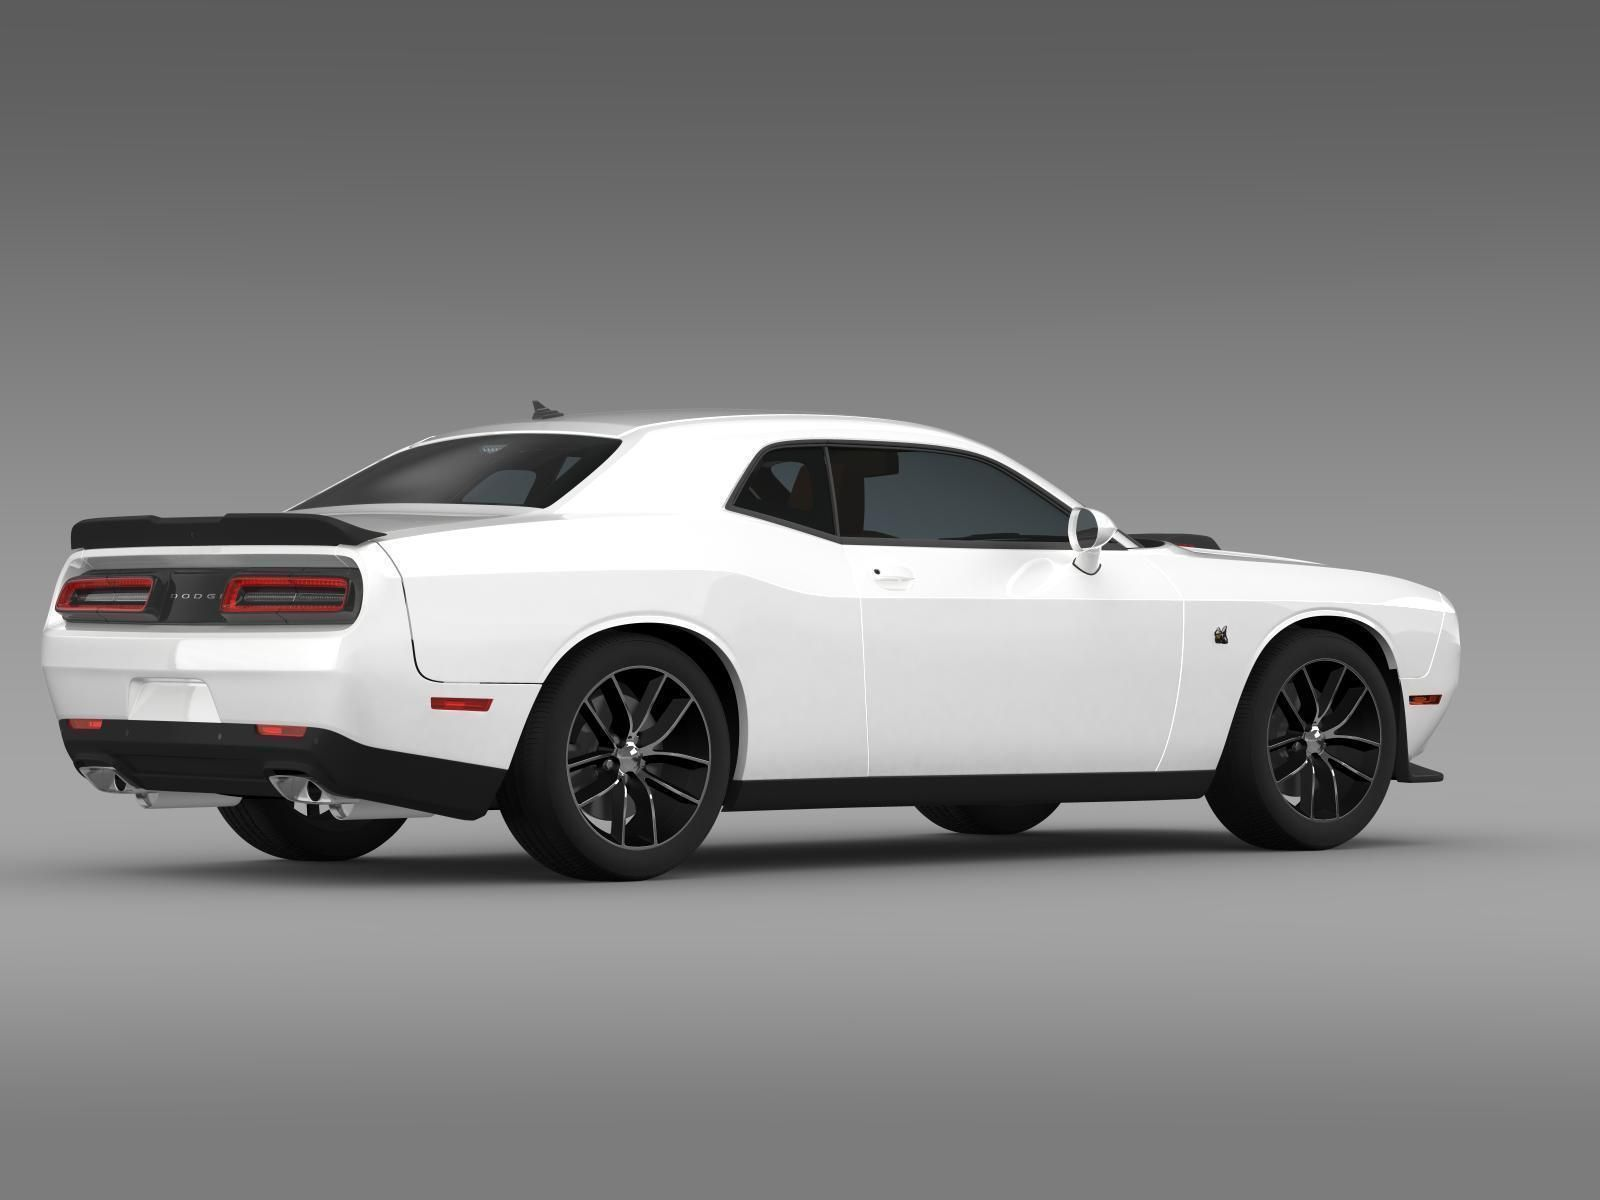 dodge challenger 392 hemi scat pack shaker 3d model max obj 3ds fbx c4d lwo lw lws. Black Bedroom Furniture Sets. Home Design Ideas